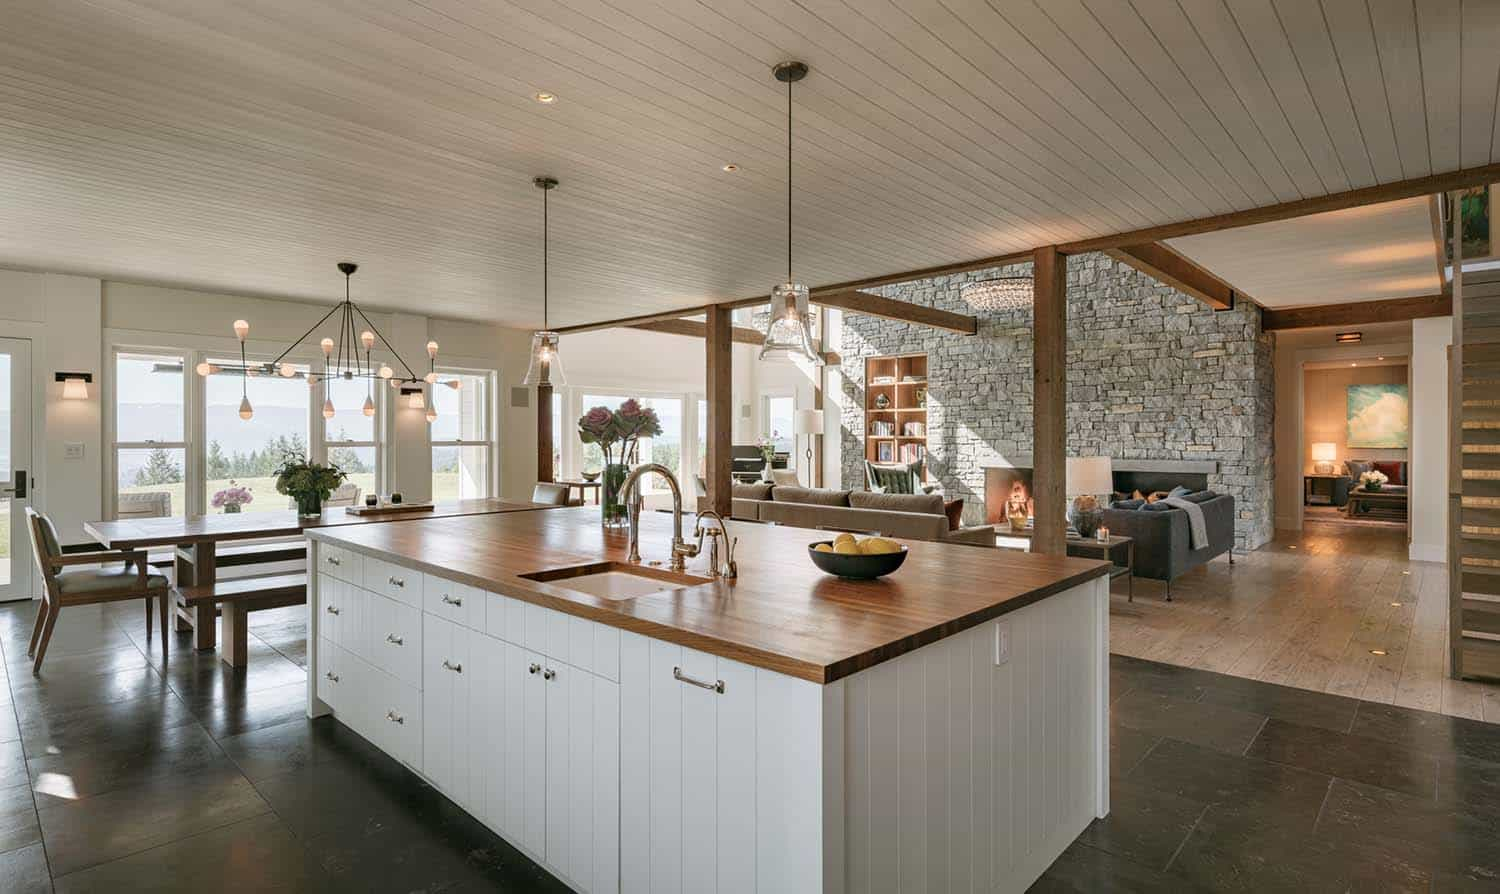 Contemporary Farmhouse Style-Rockefeller Partners Architects-06-1 Kindesign